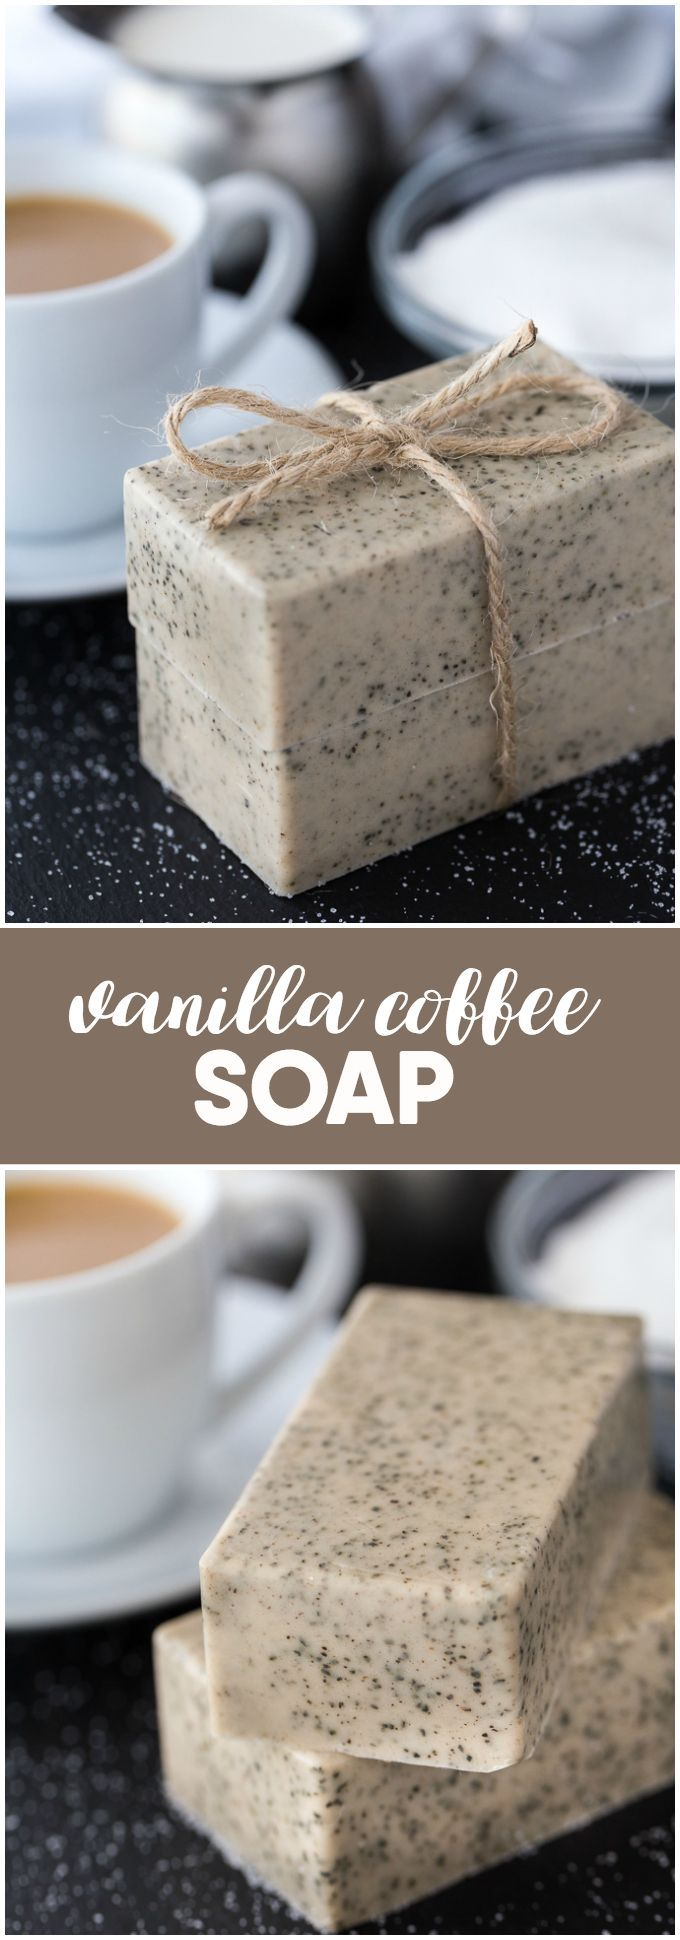 Vanilla Coffee Soap - Keep your coffee grounds from your morning coffee and whip up a batch of this lovely soap!